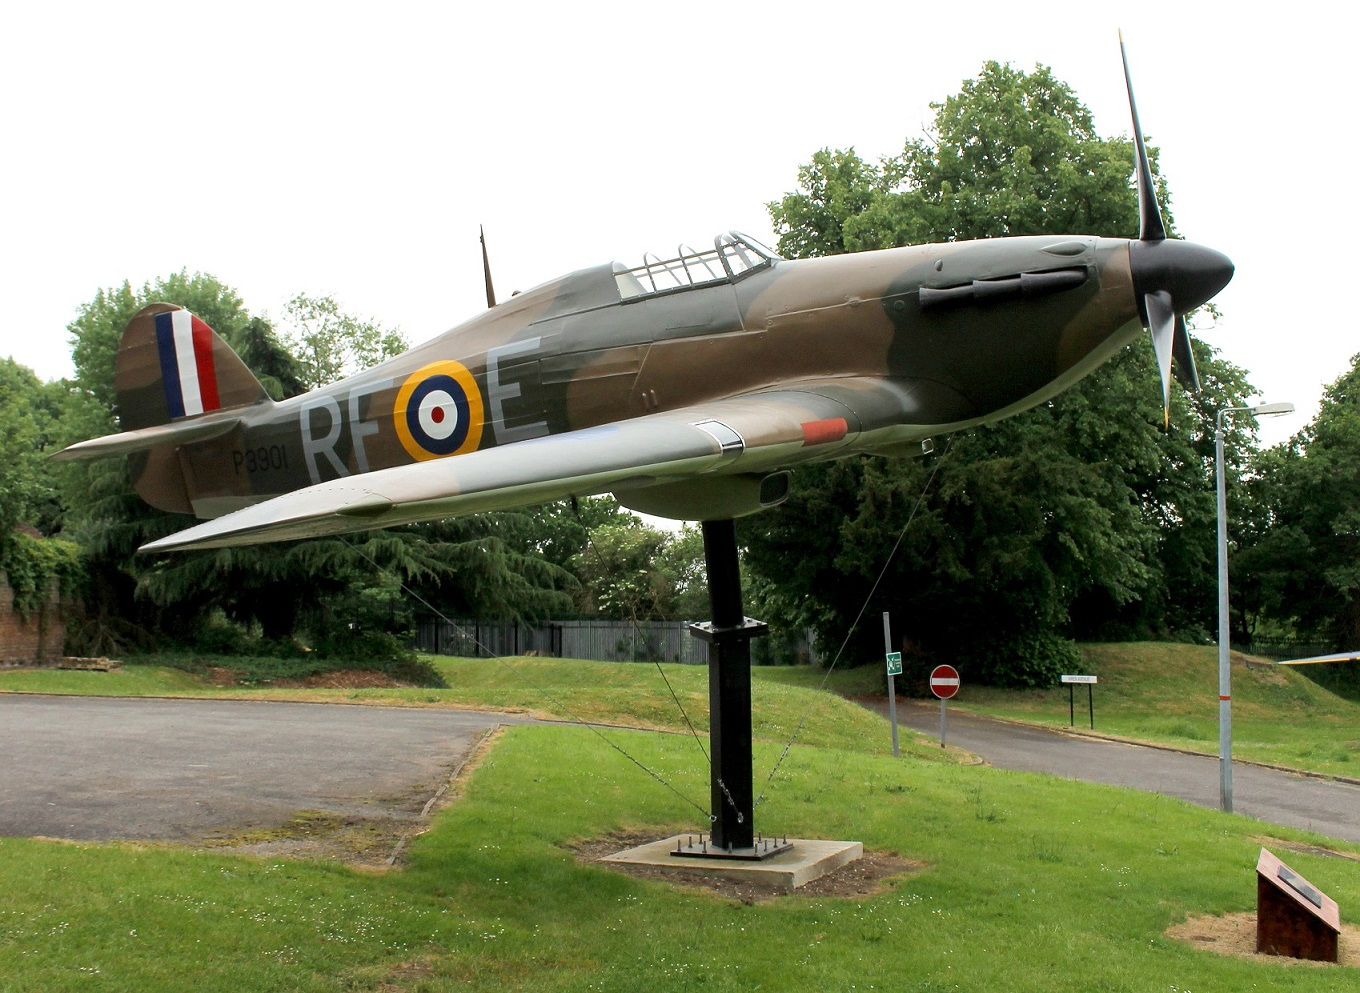 The full scale model of a Hurricane